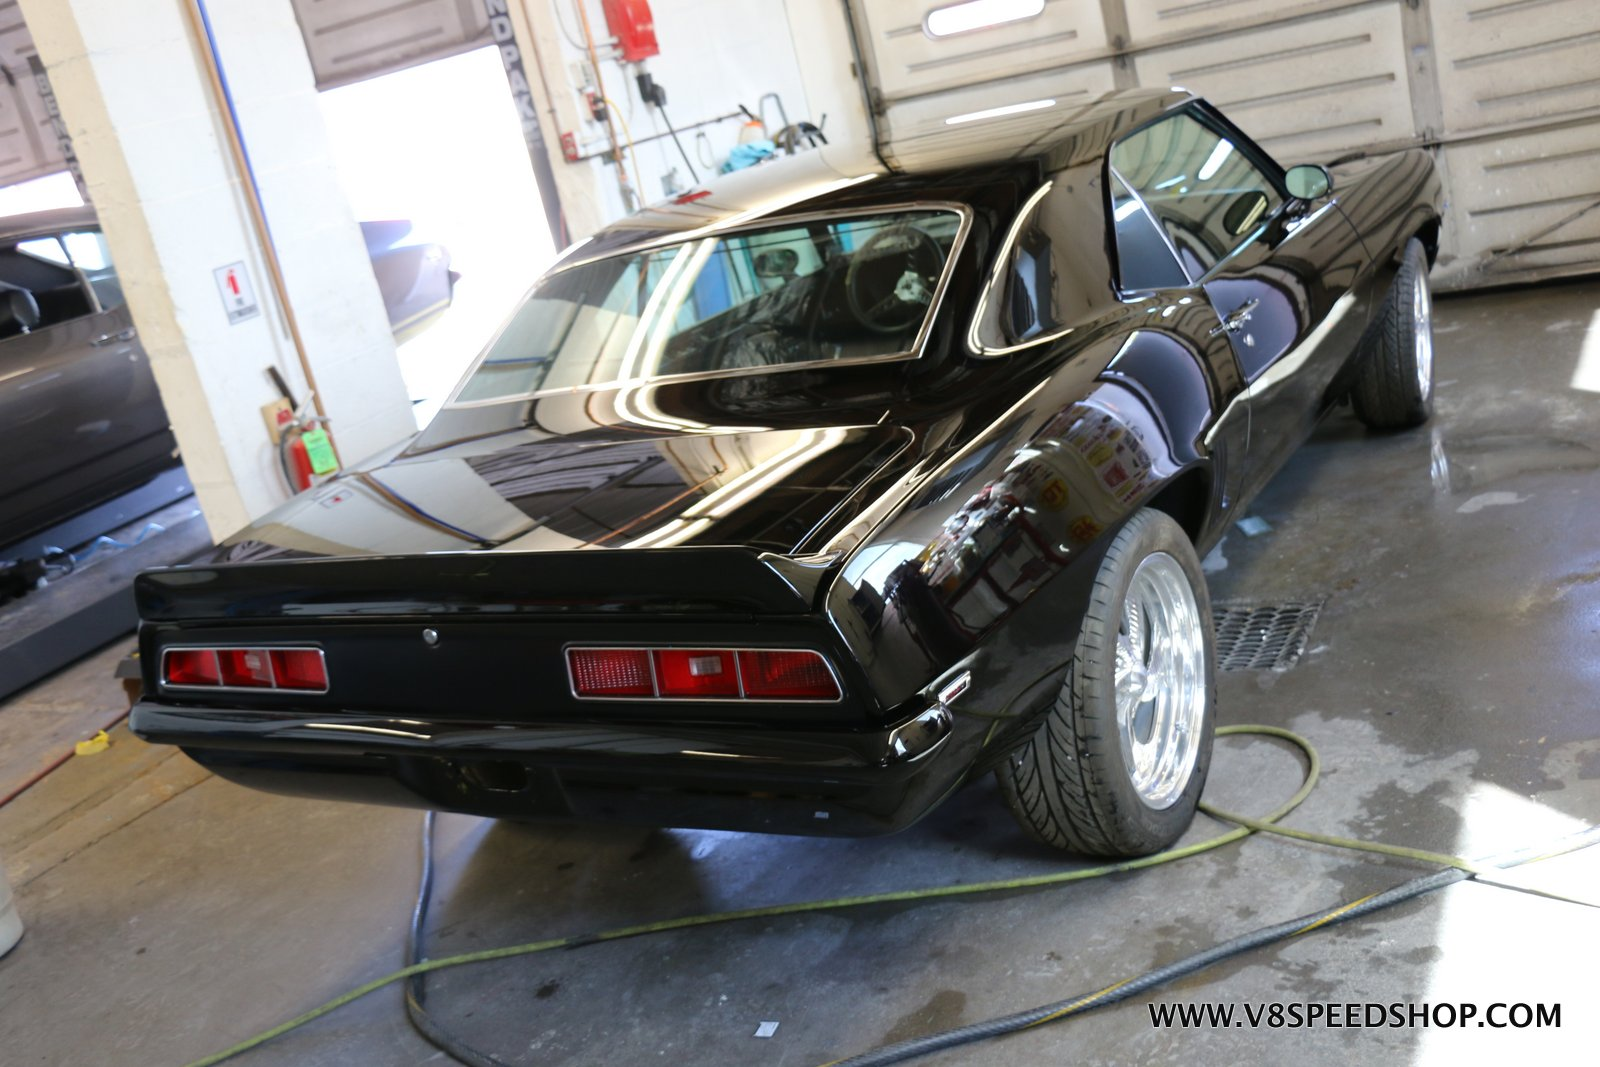 1969 Chevrolet Camaro Sheetmetal, Bodywork, and Paint Photo Gallery